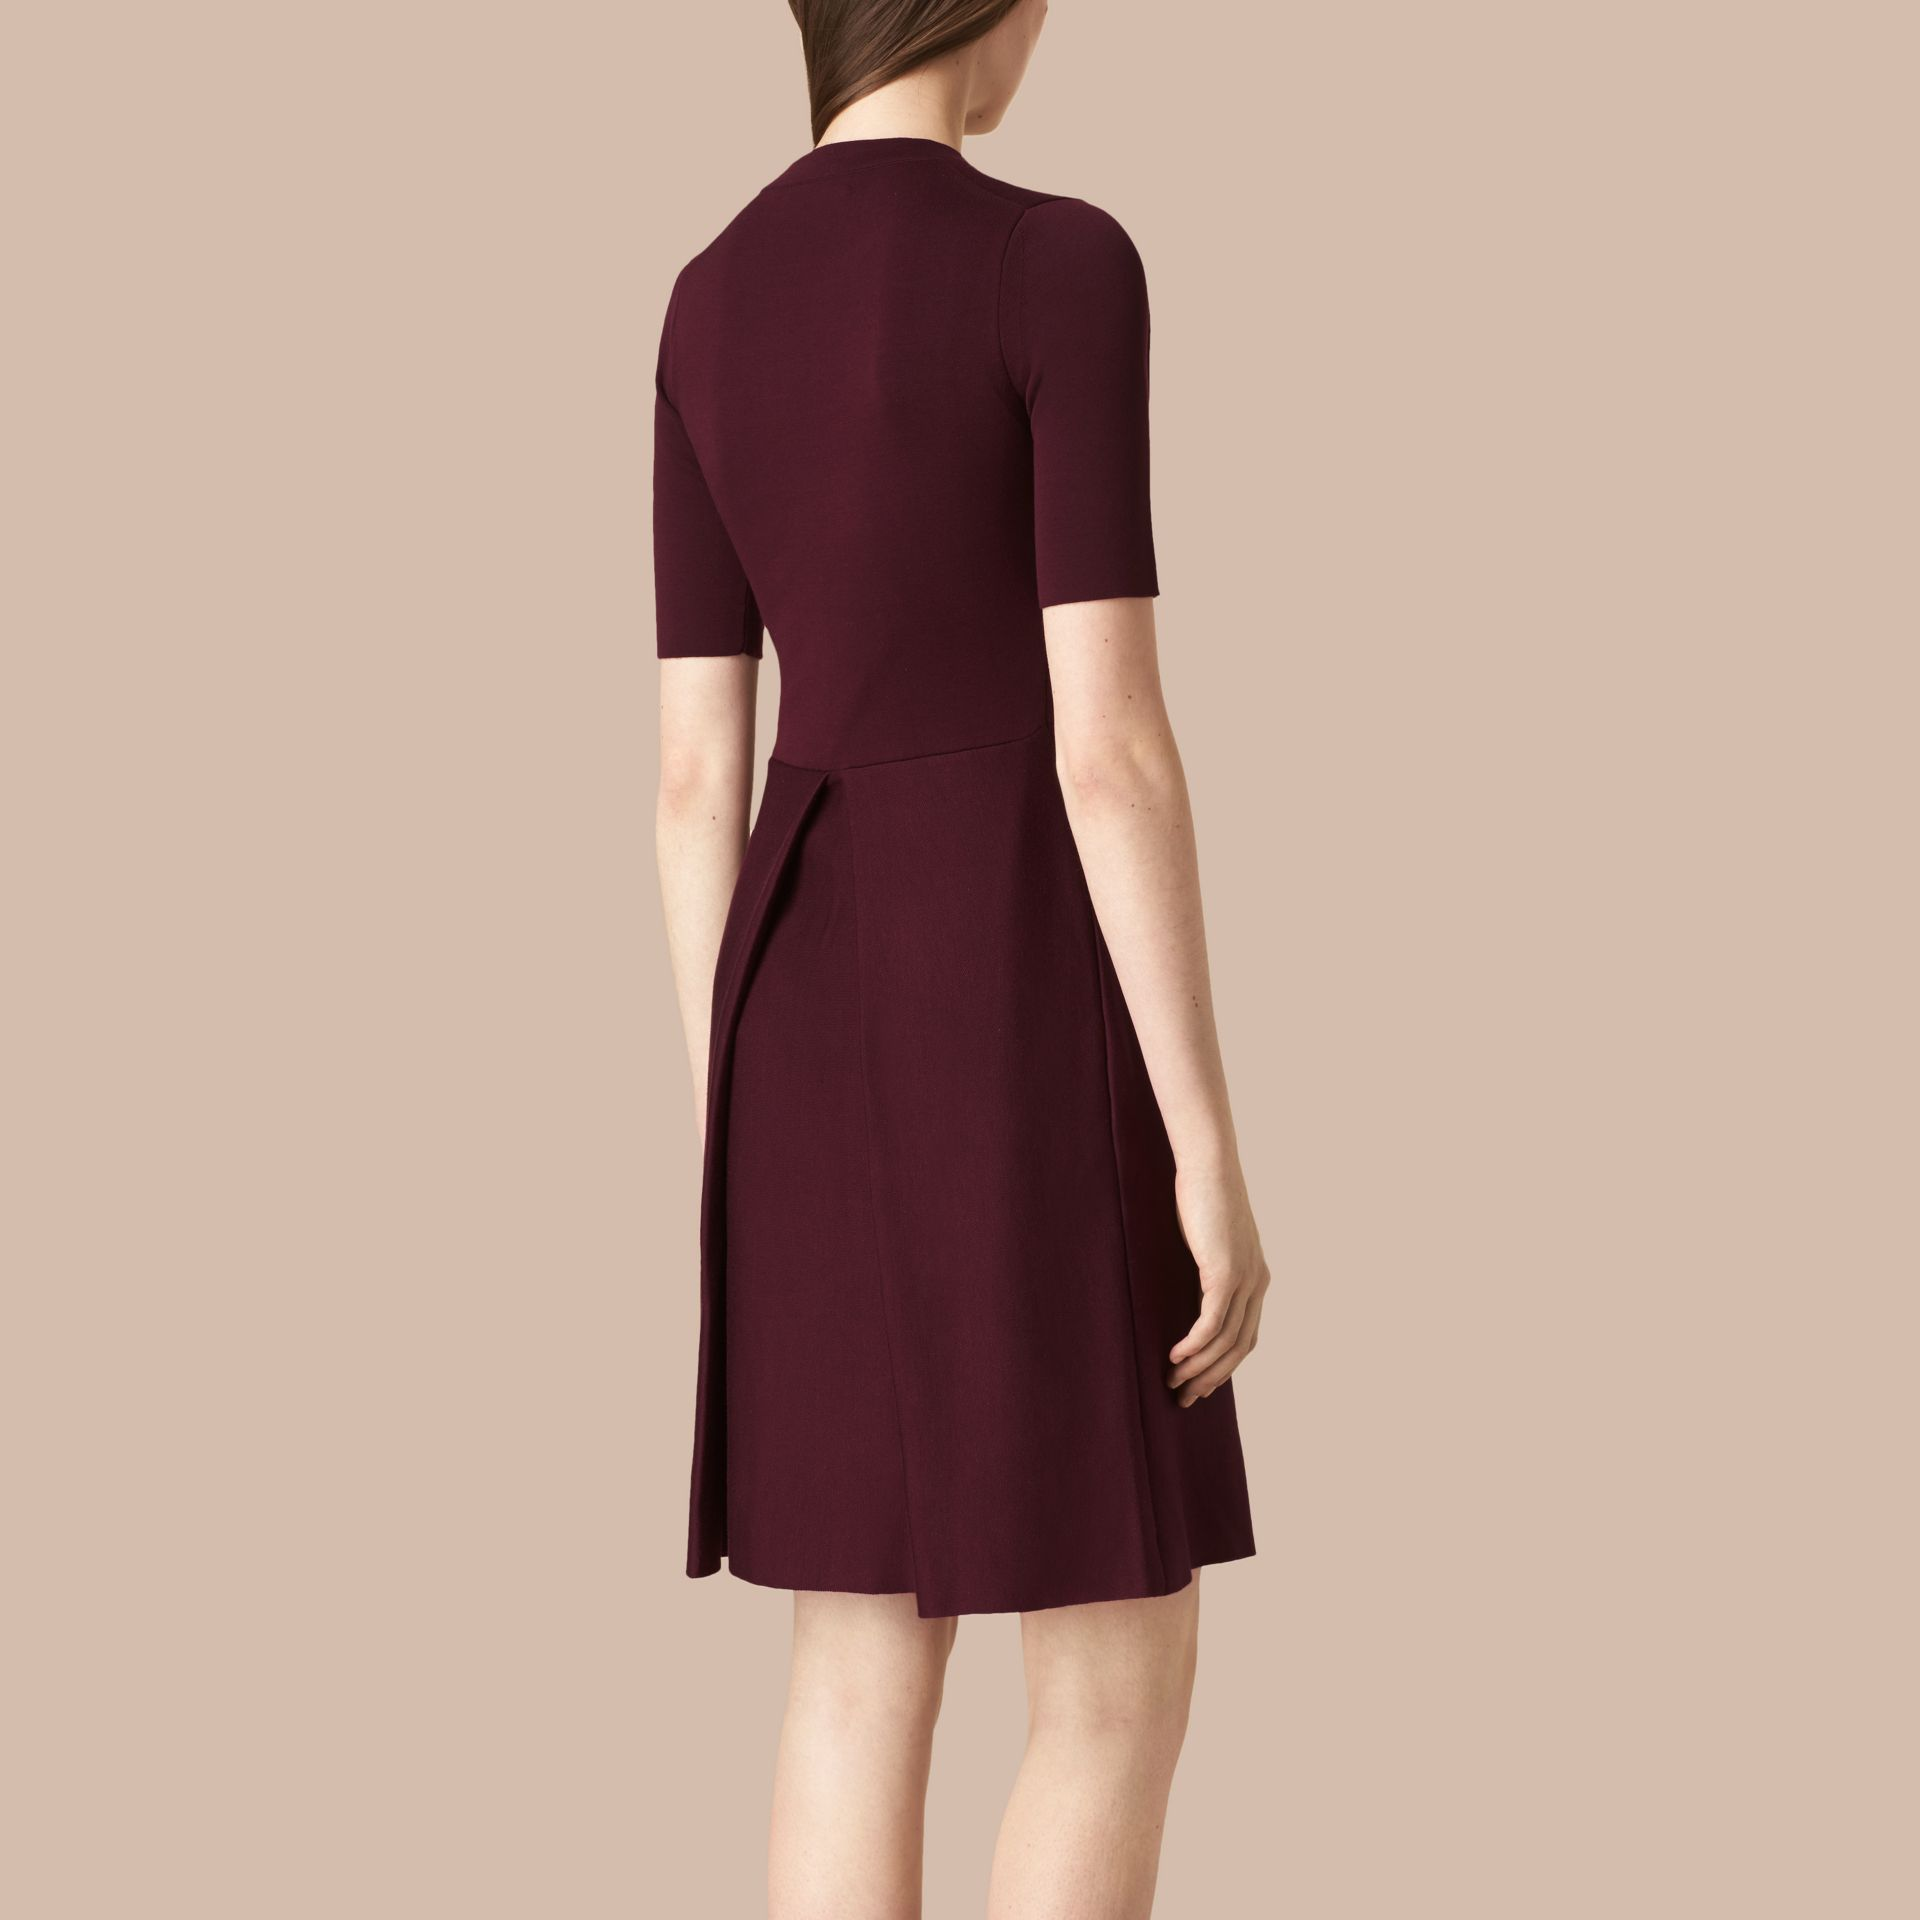 Deep burgundy Knitted Silk Wool Dress Deep Burgundy - gallery image 2